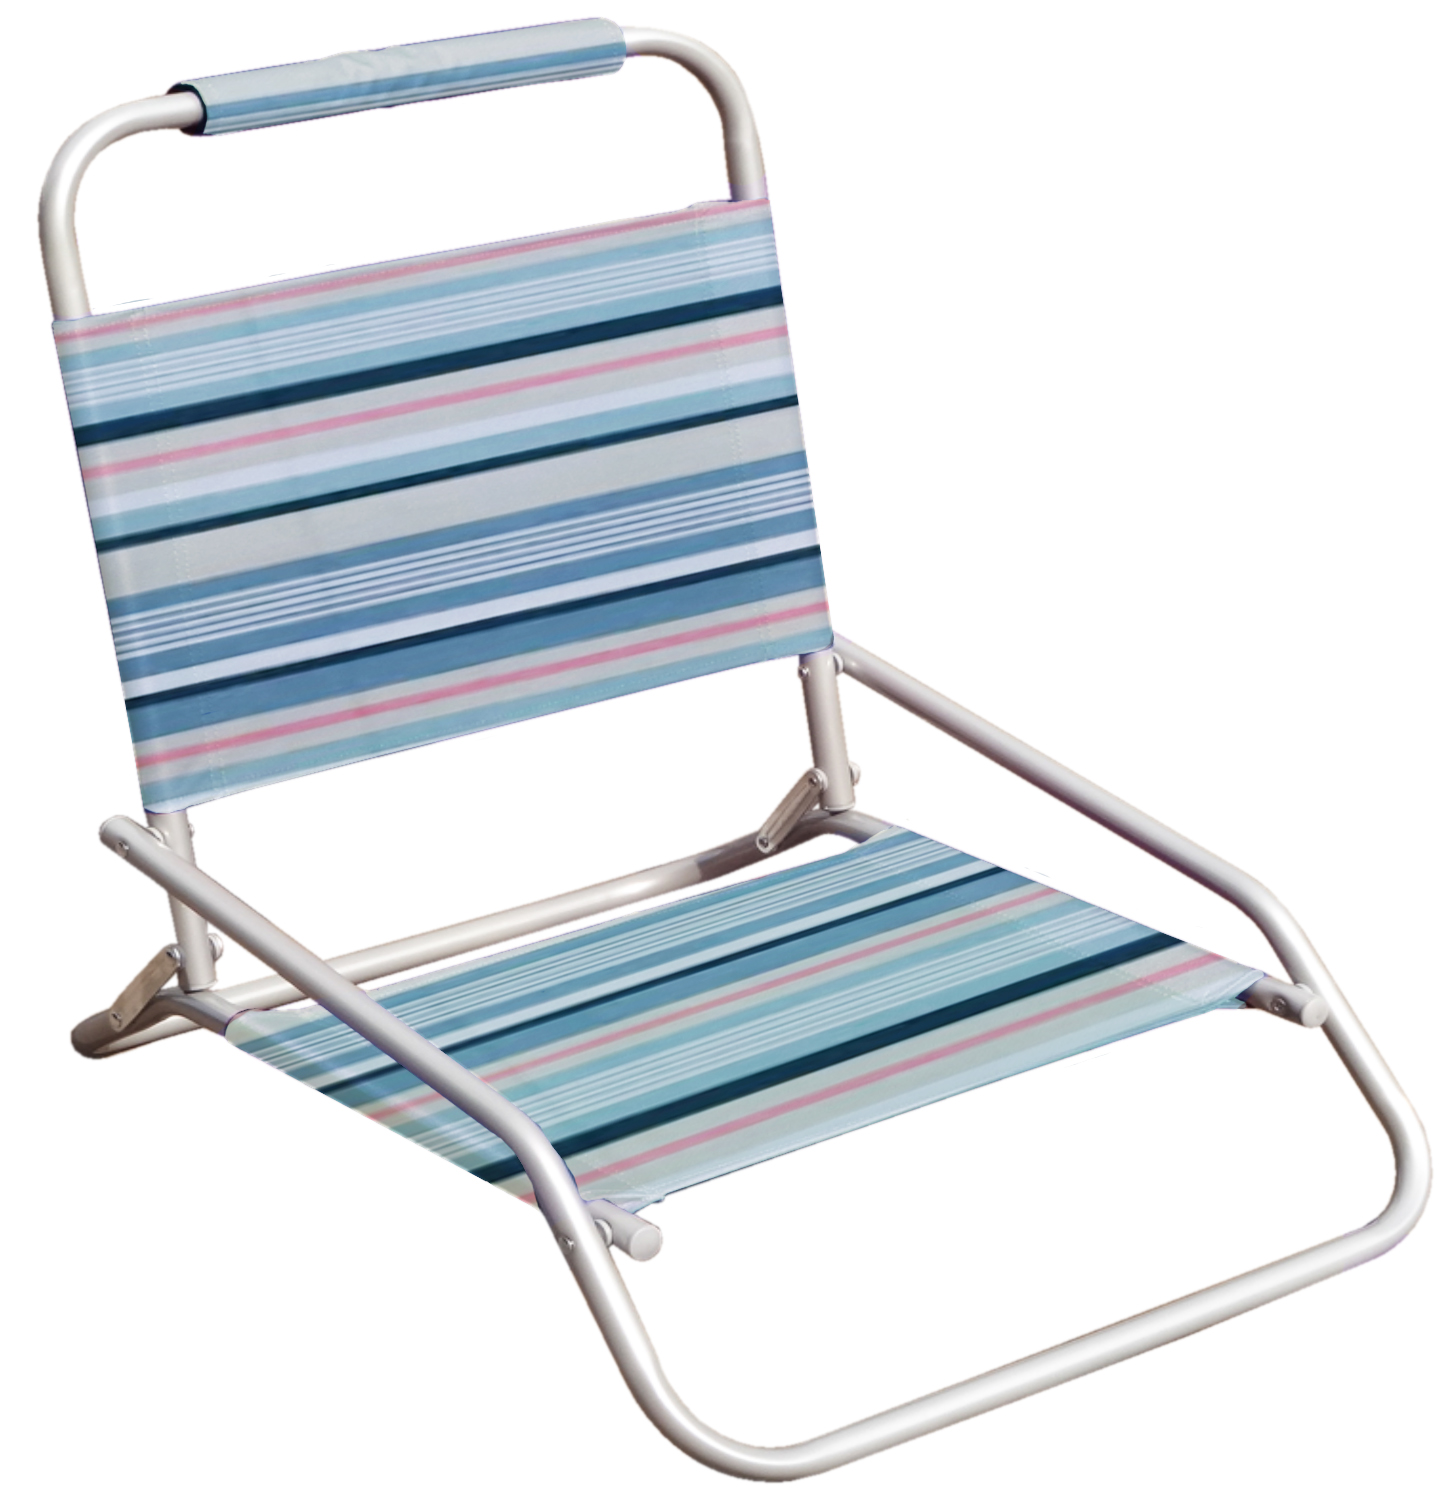 Cheap Folding Beach Chairs Lightweight Folding Beach Chair Fabulous Cvs Beach Chairs